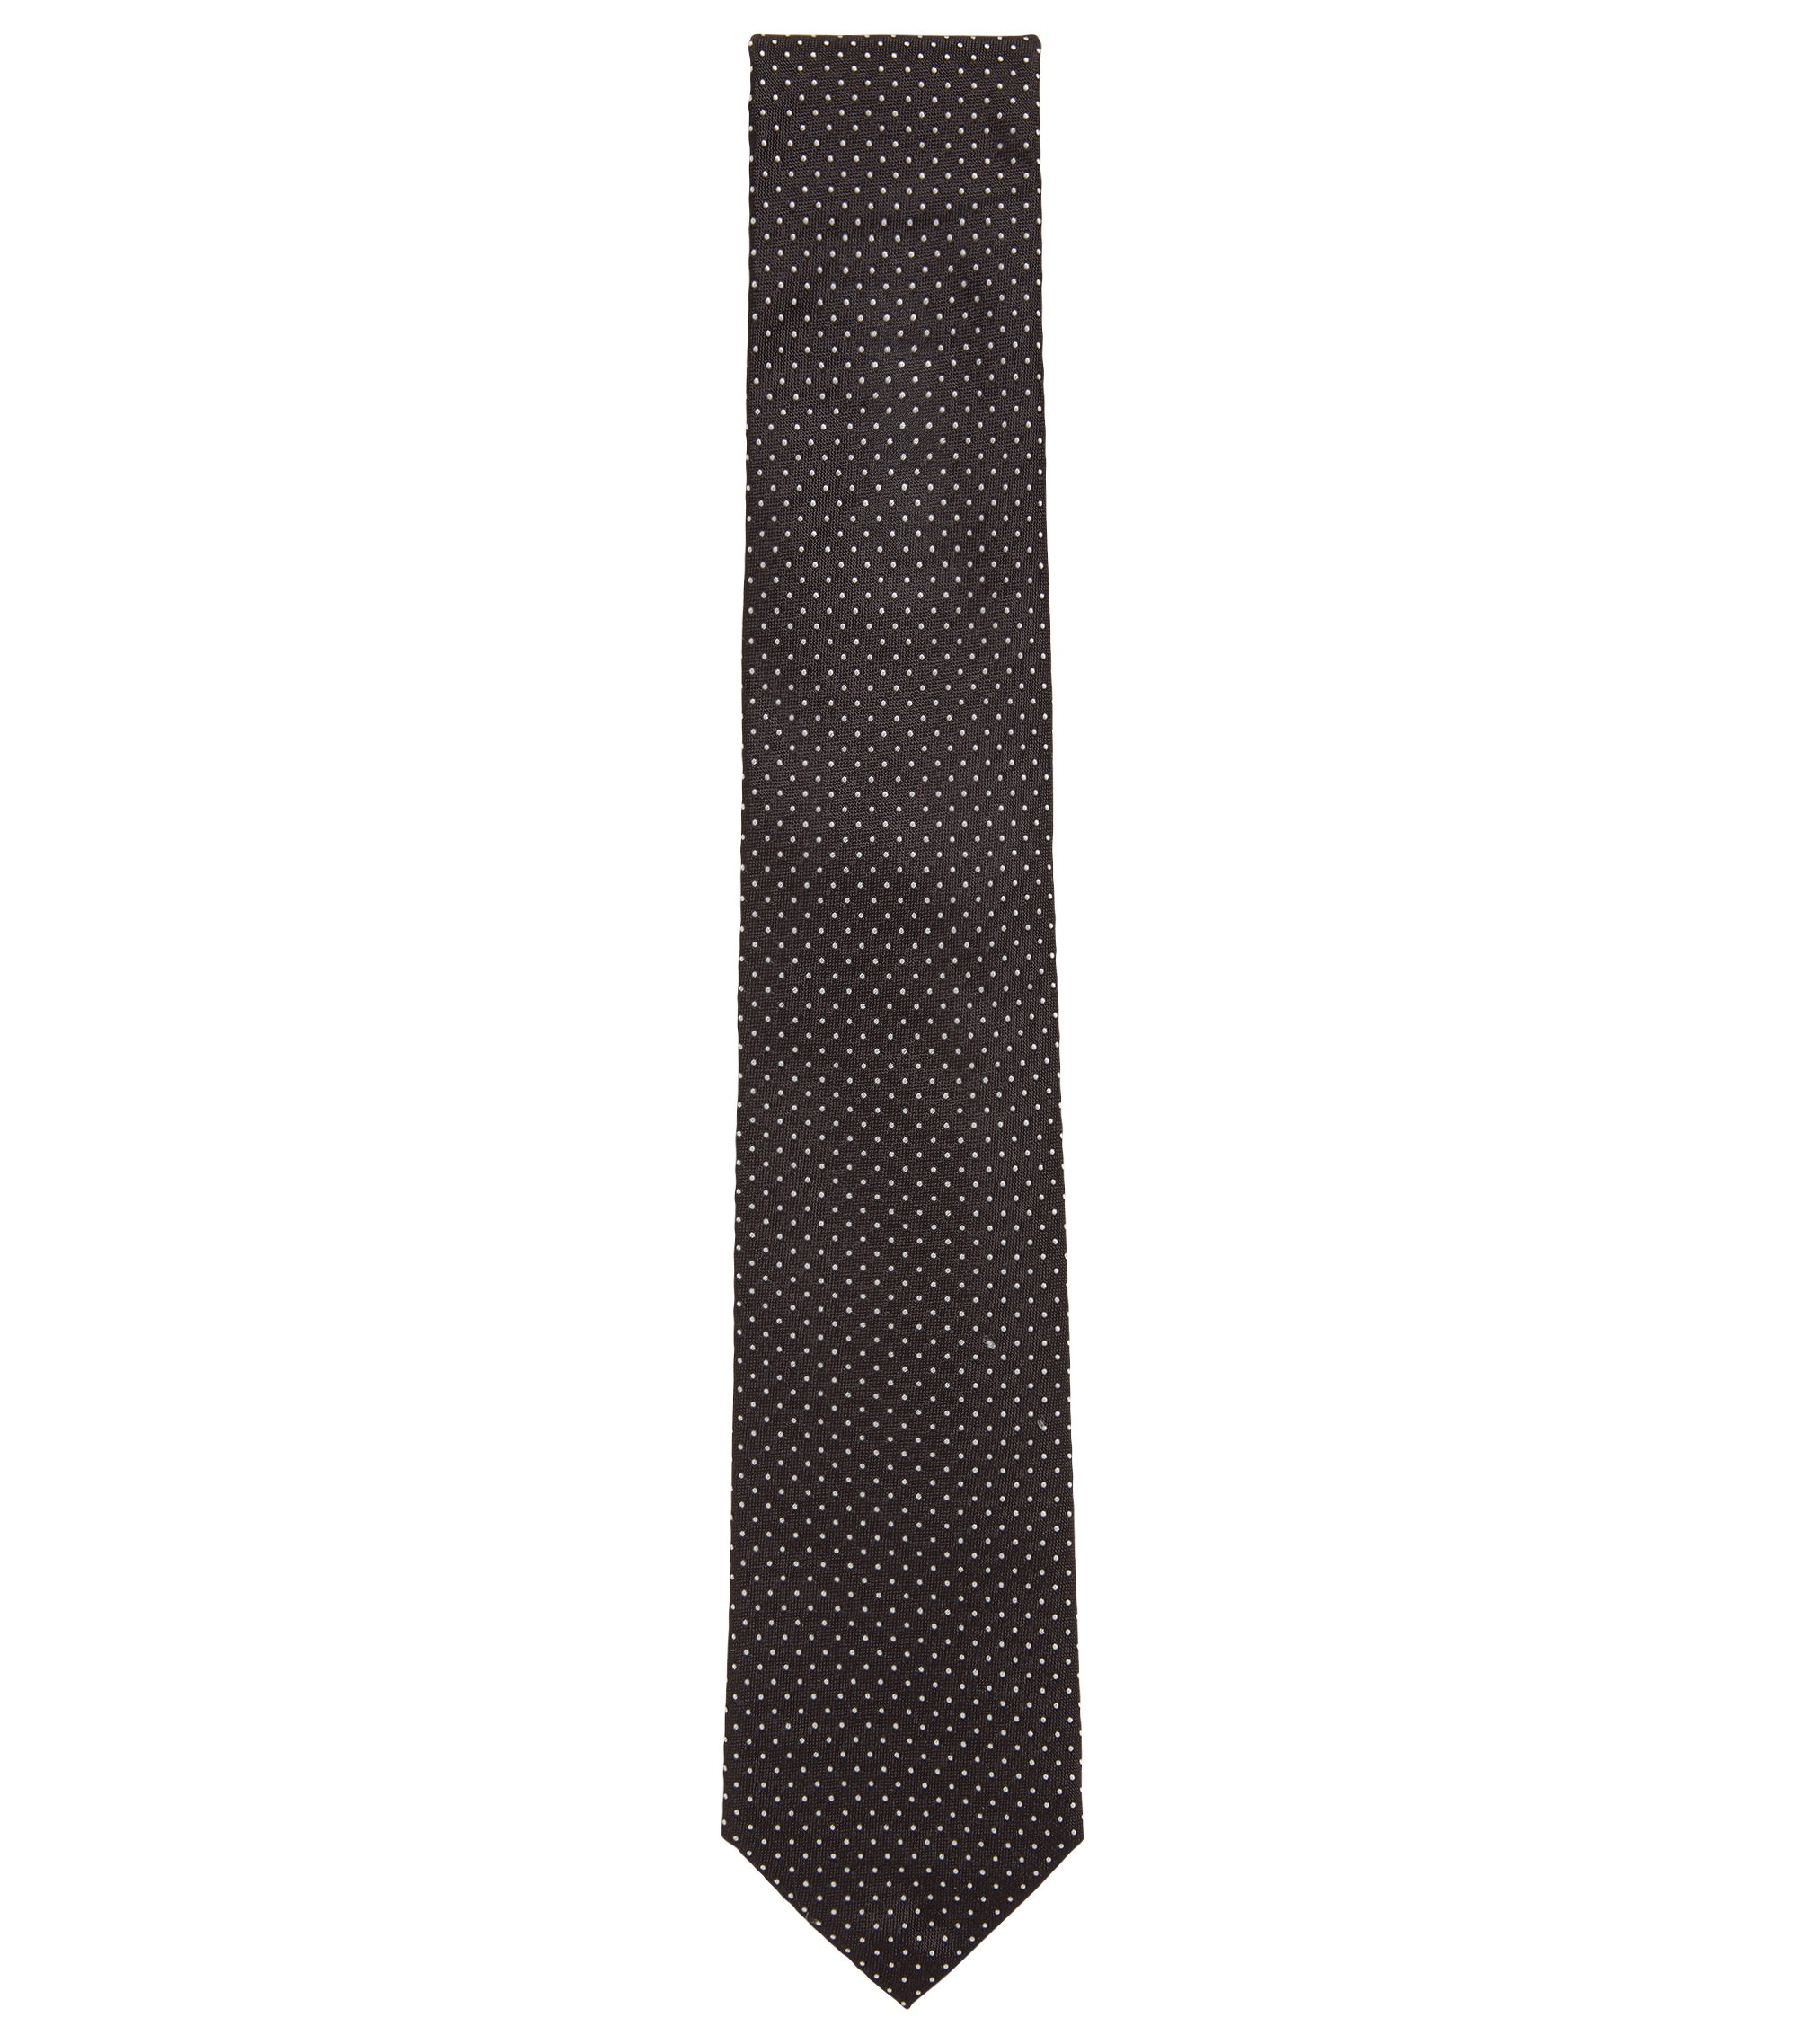 Polka-dot patterned tie in Italian silk jacquard, Black